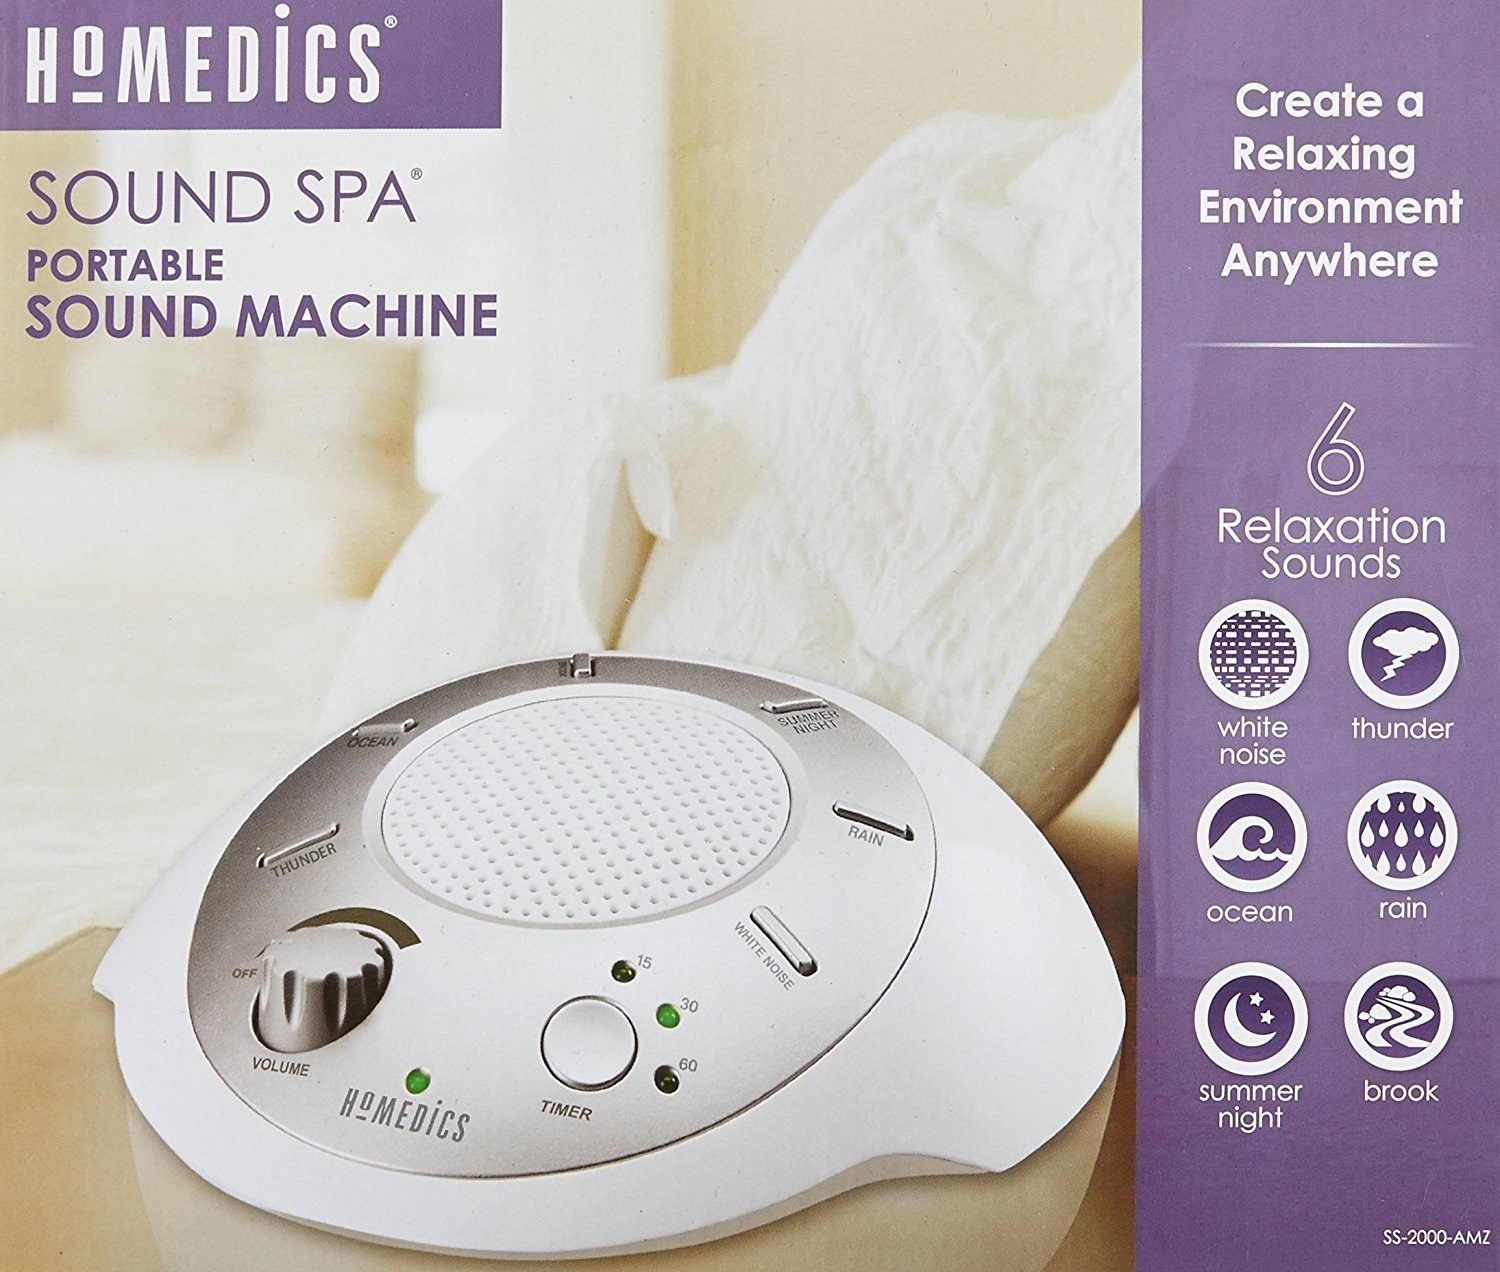 Better Sleep White Noise Sound Machine For Adults And: 22 Helpful Tips For Anyone Who Wants To Sleep Better